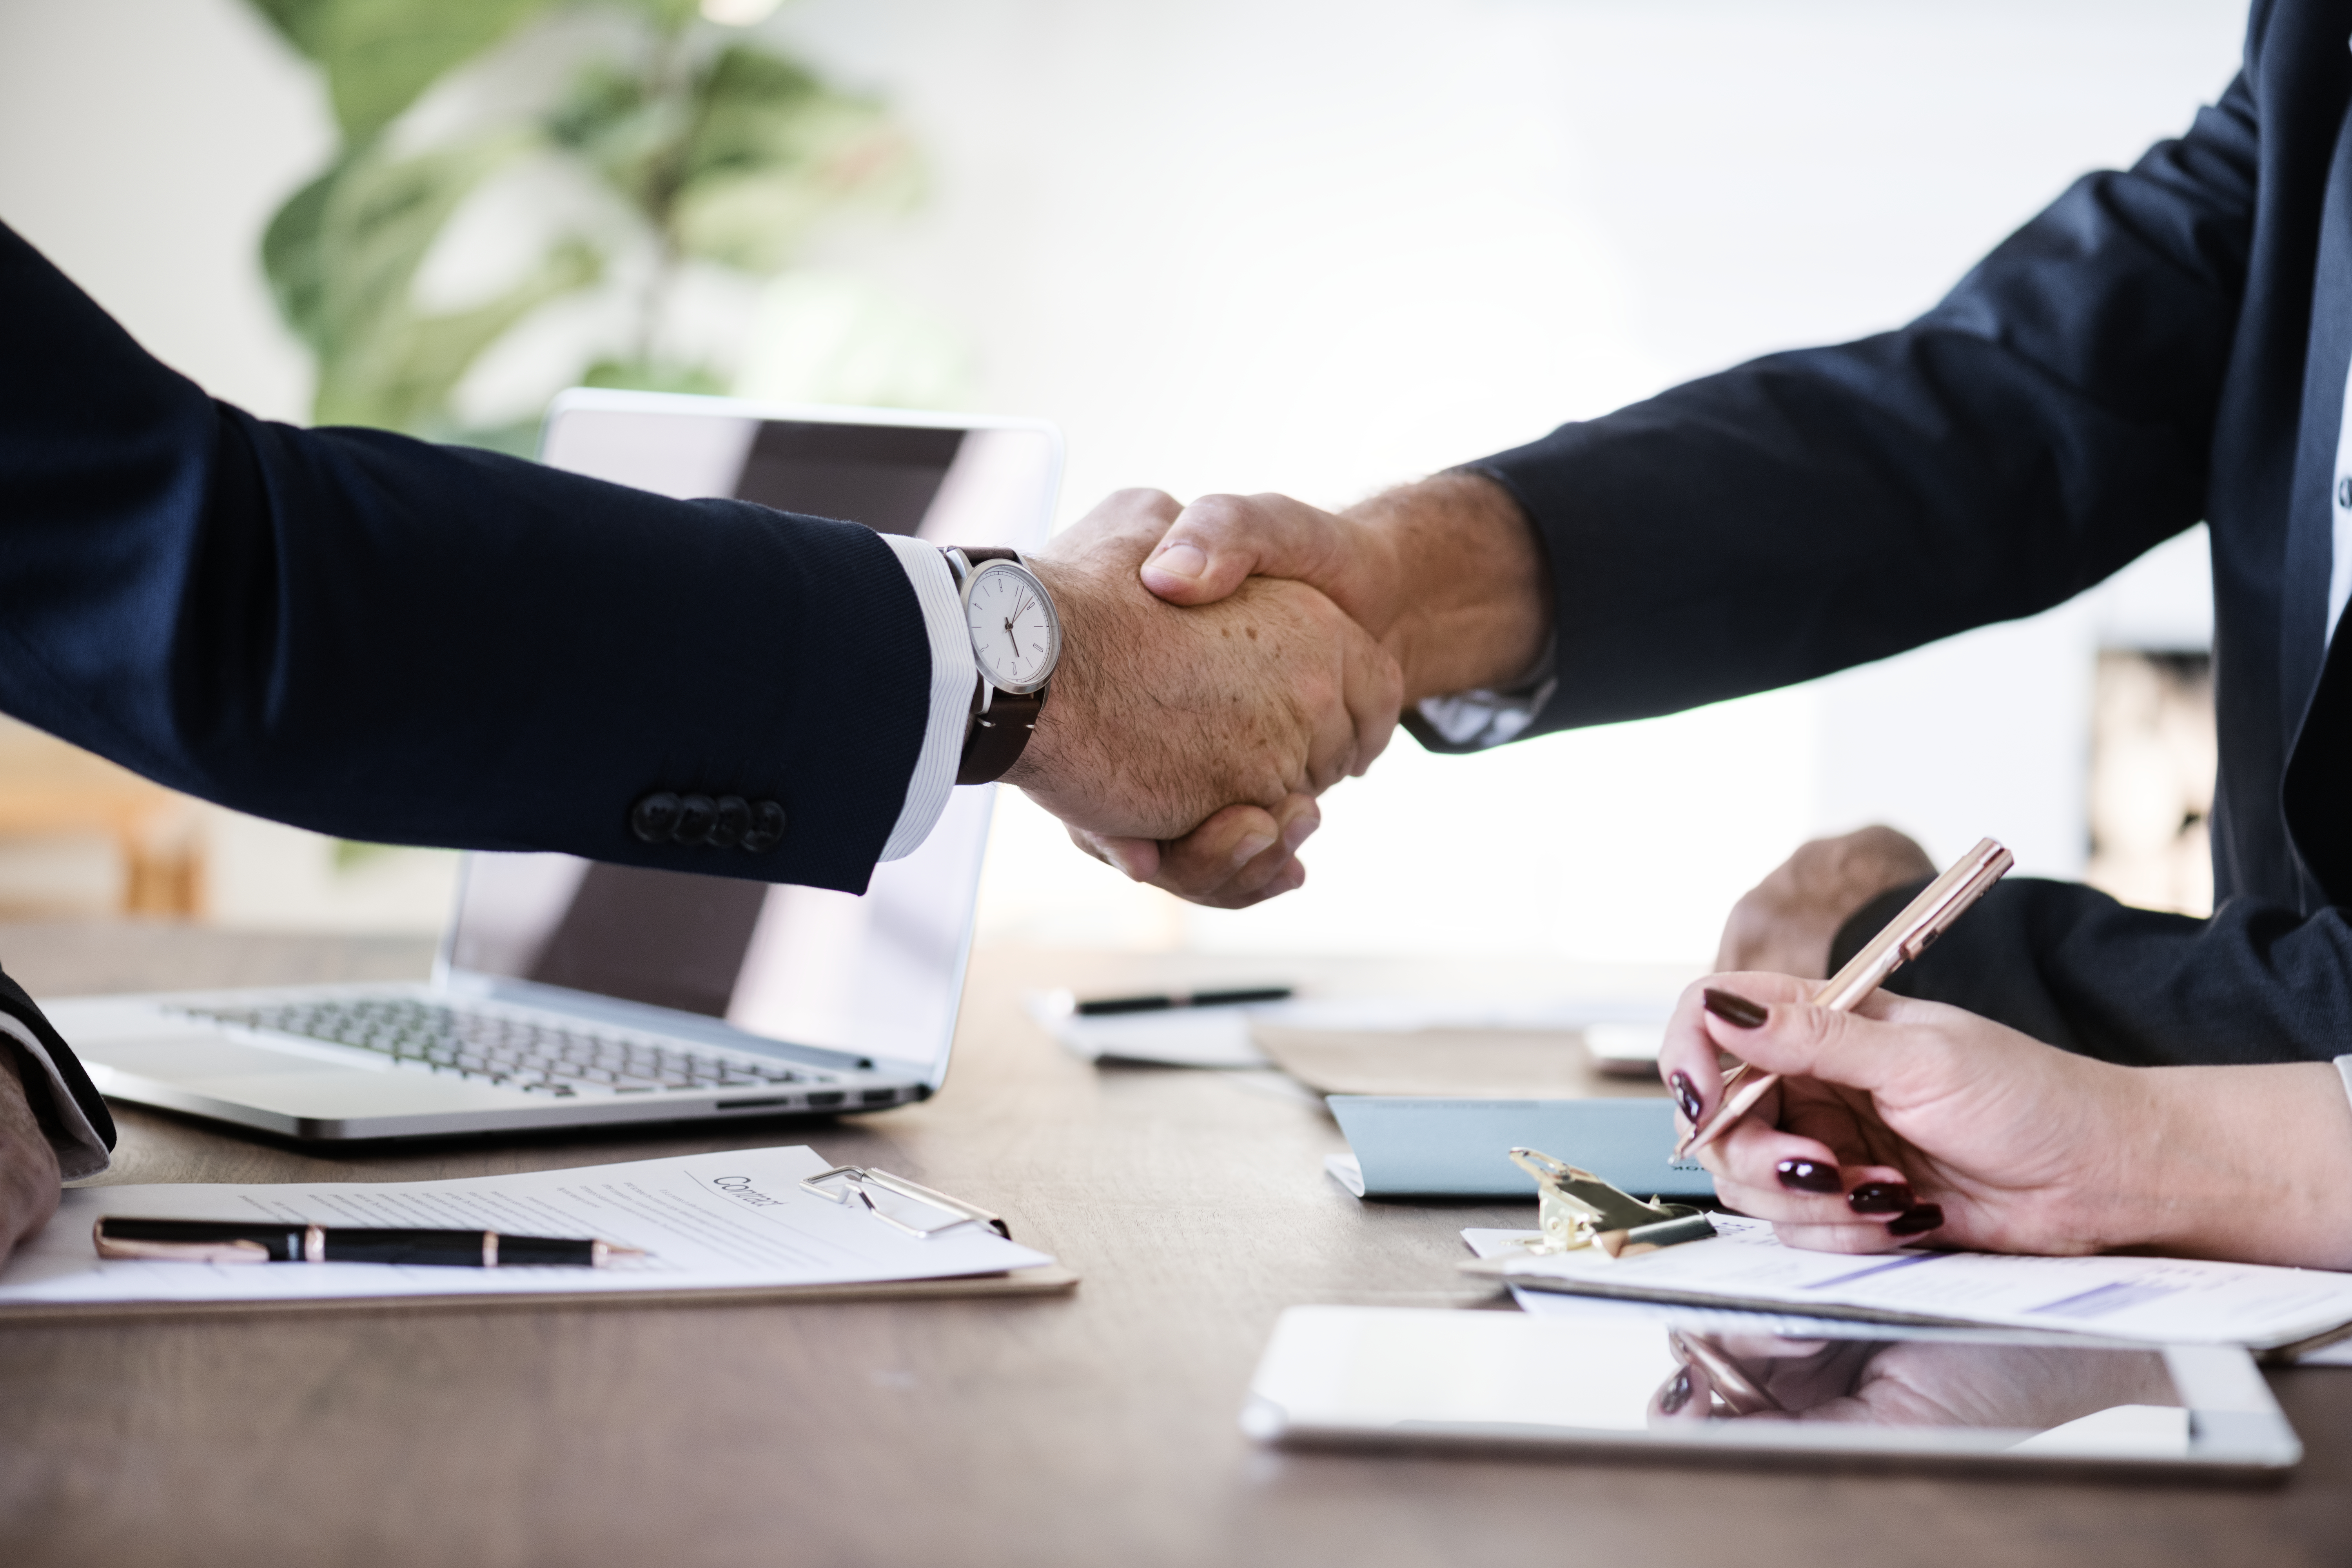 Two people in business attire shaking hands over a wooden table covered with documents, clipboards, and electronic devices